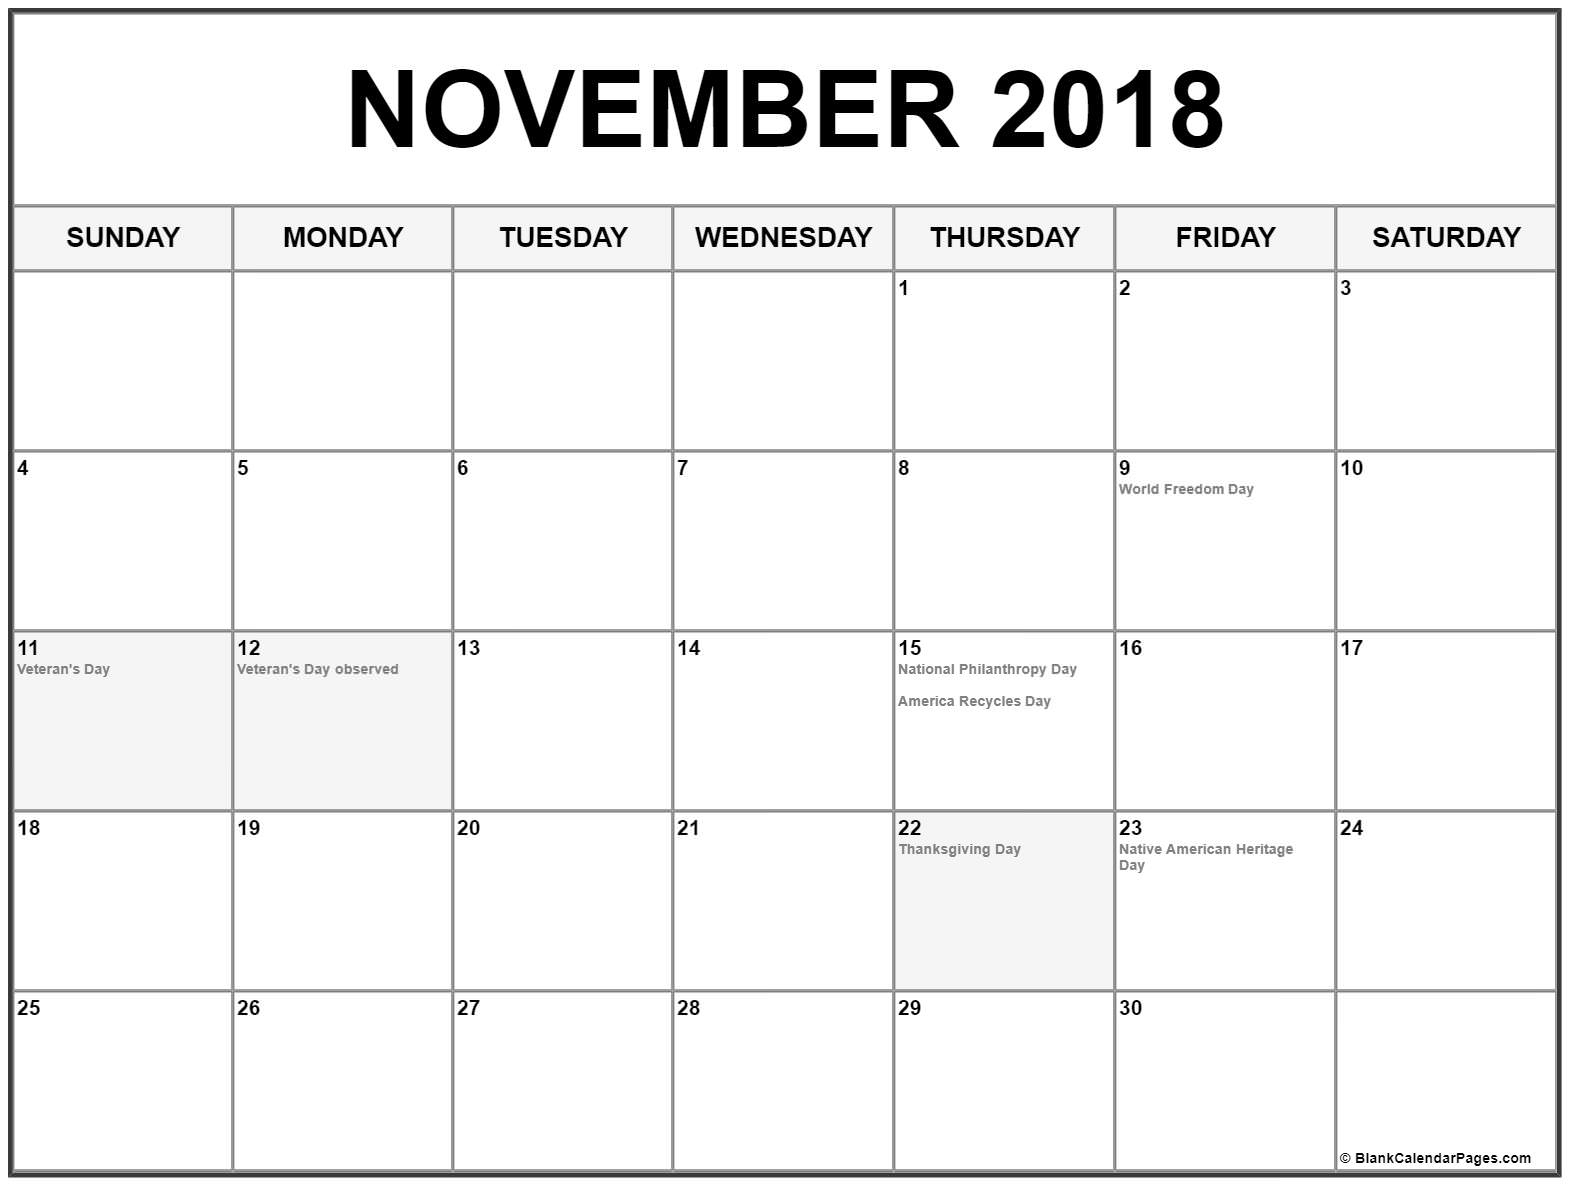 november 2018 calendar with holidays printable calendar::November 2018 Calendar USA